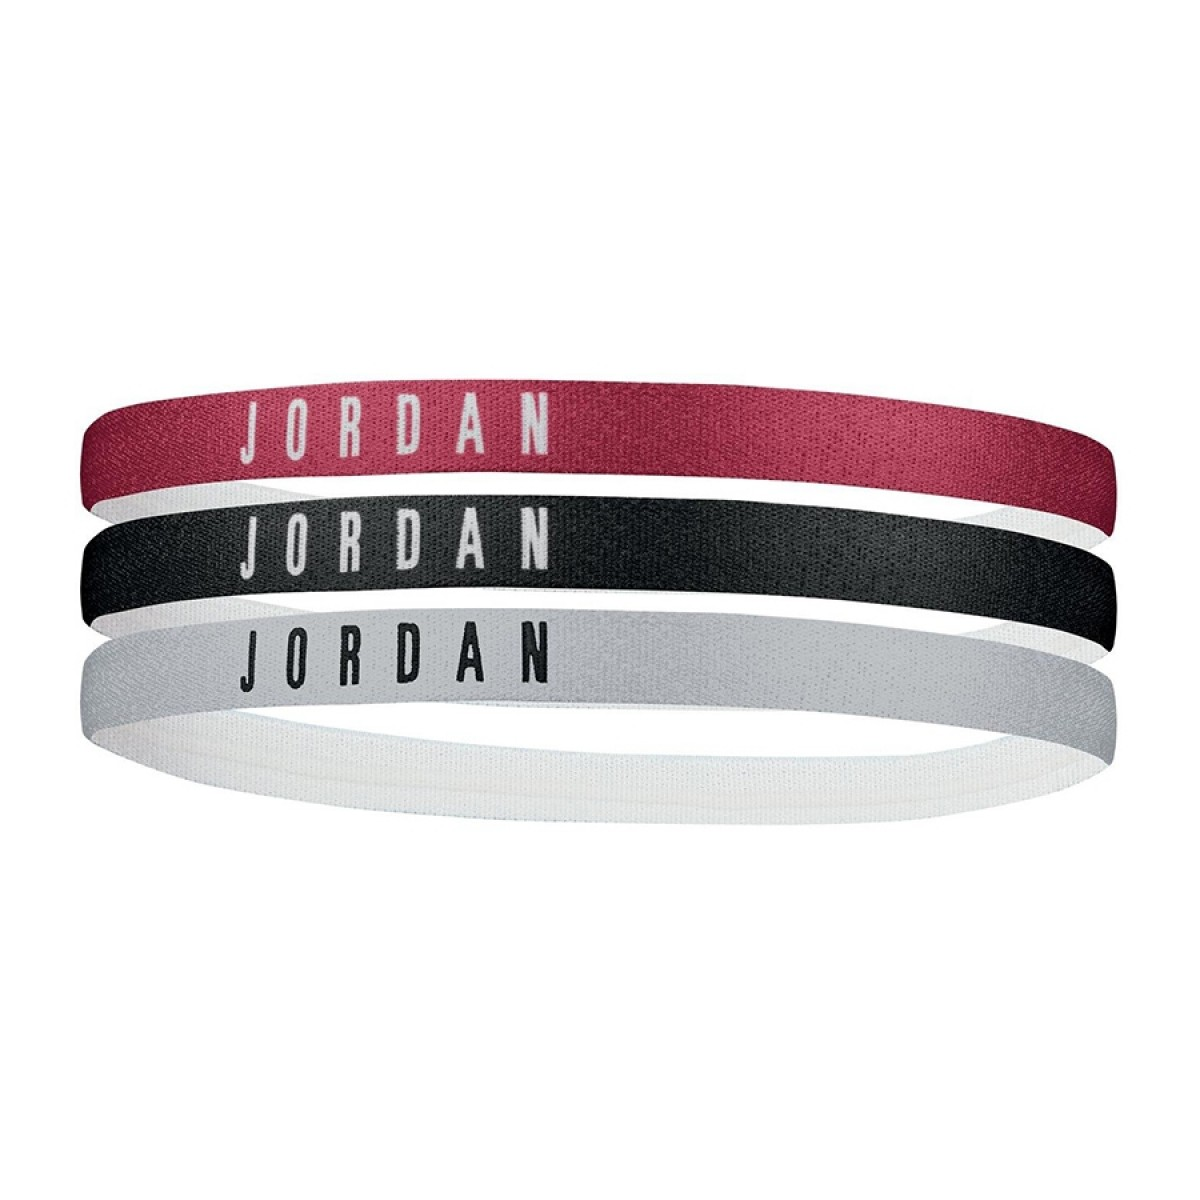 Jordan Headband 3 Pack 'Black/Red/Grey'